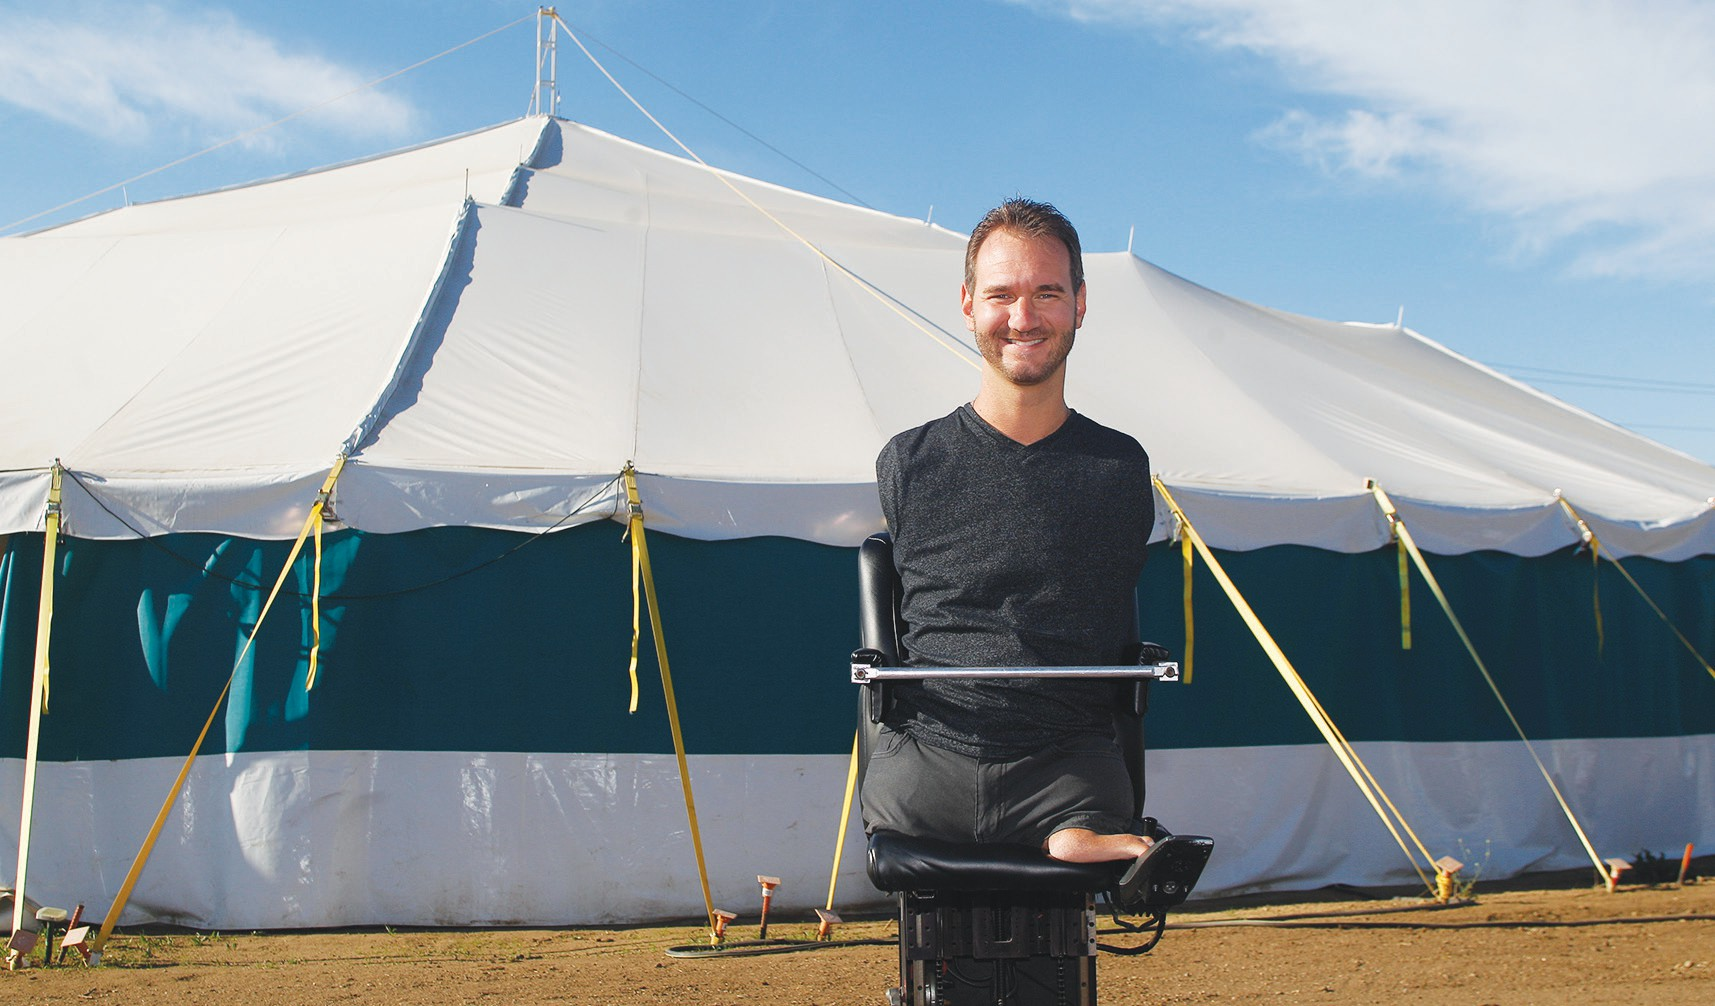 COME ONE COME ALLu2014Motivational speaker Nick Vujicic founder of the nonprofit Life  sc 1 st  The Camarillo Acorn & Moorpark evangelist pitches Jesus and a big tent | Camarillo Acorn